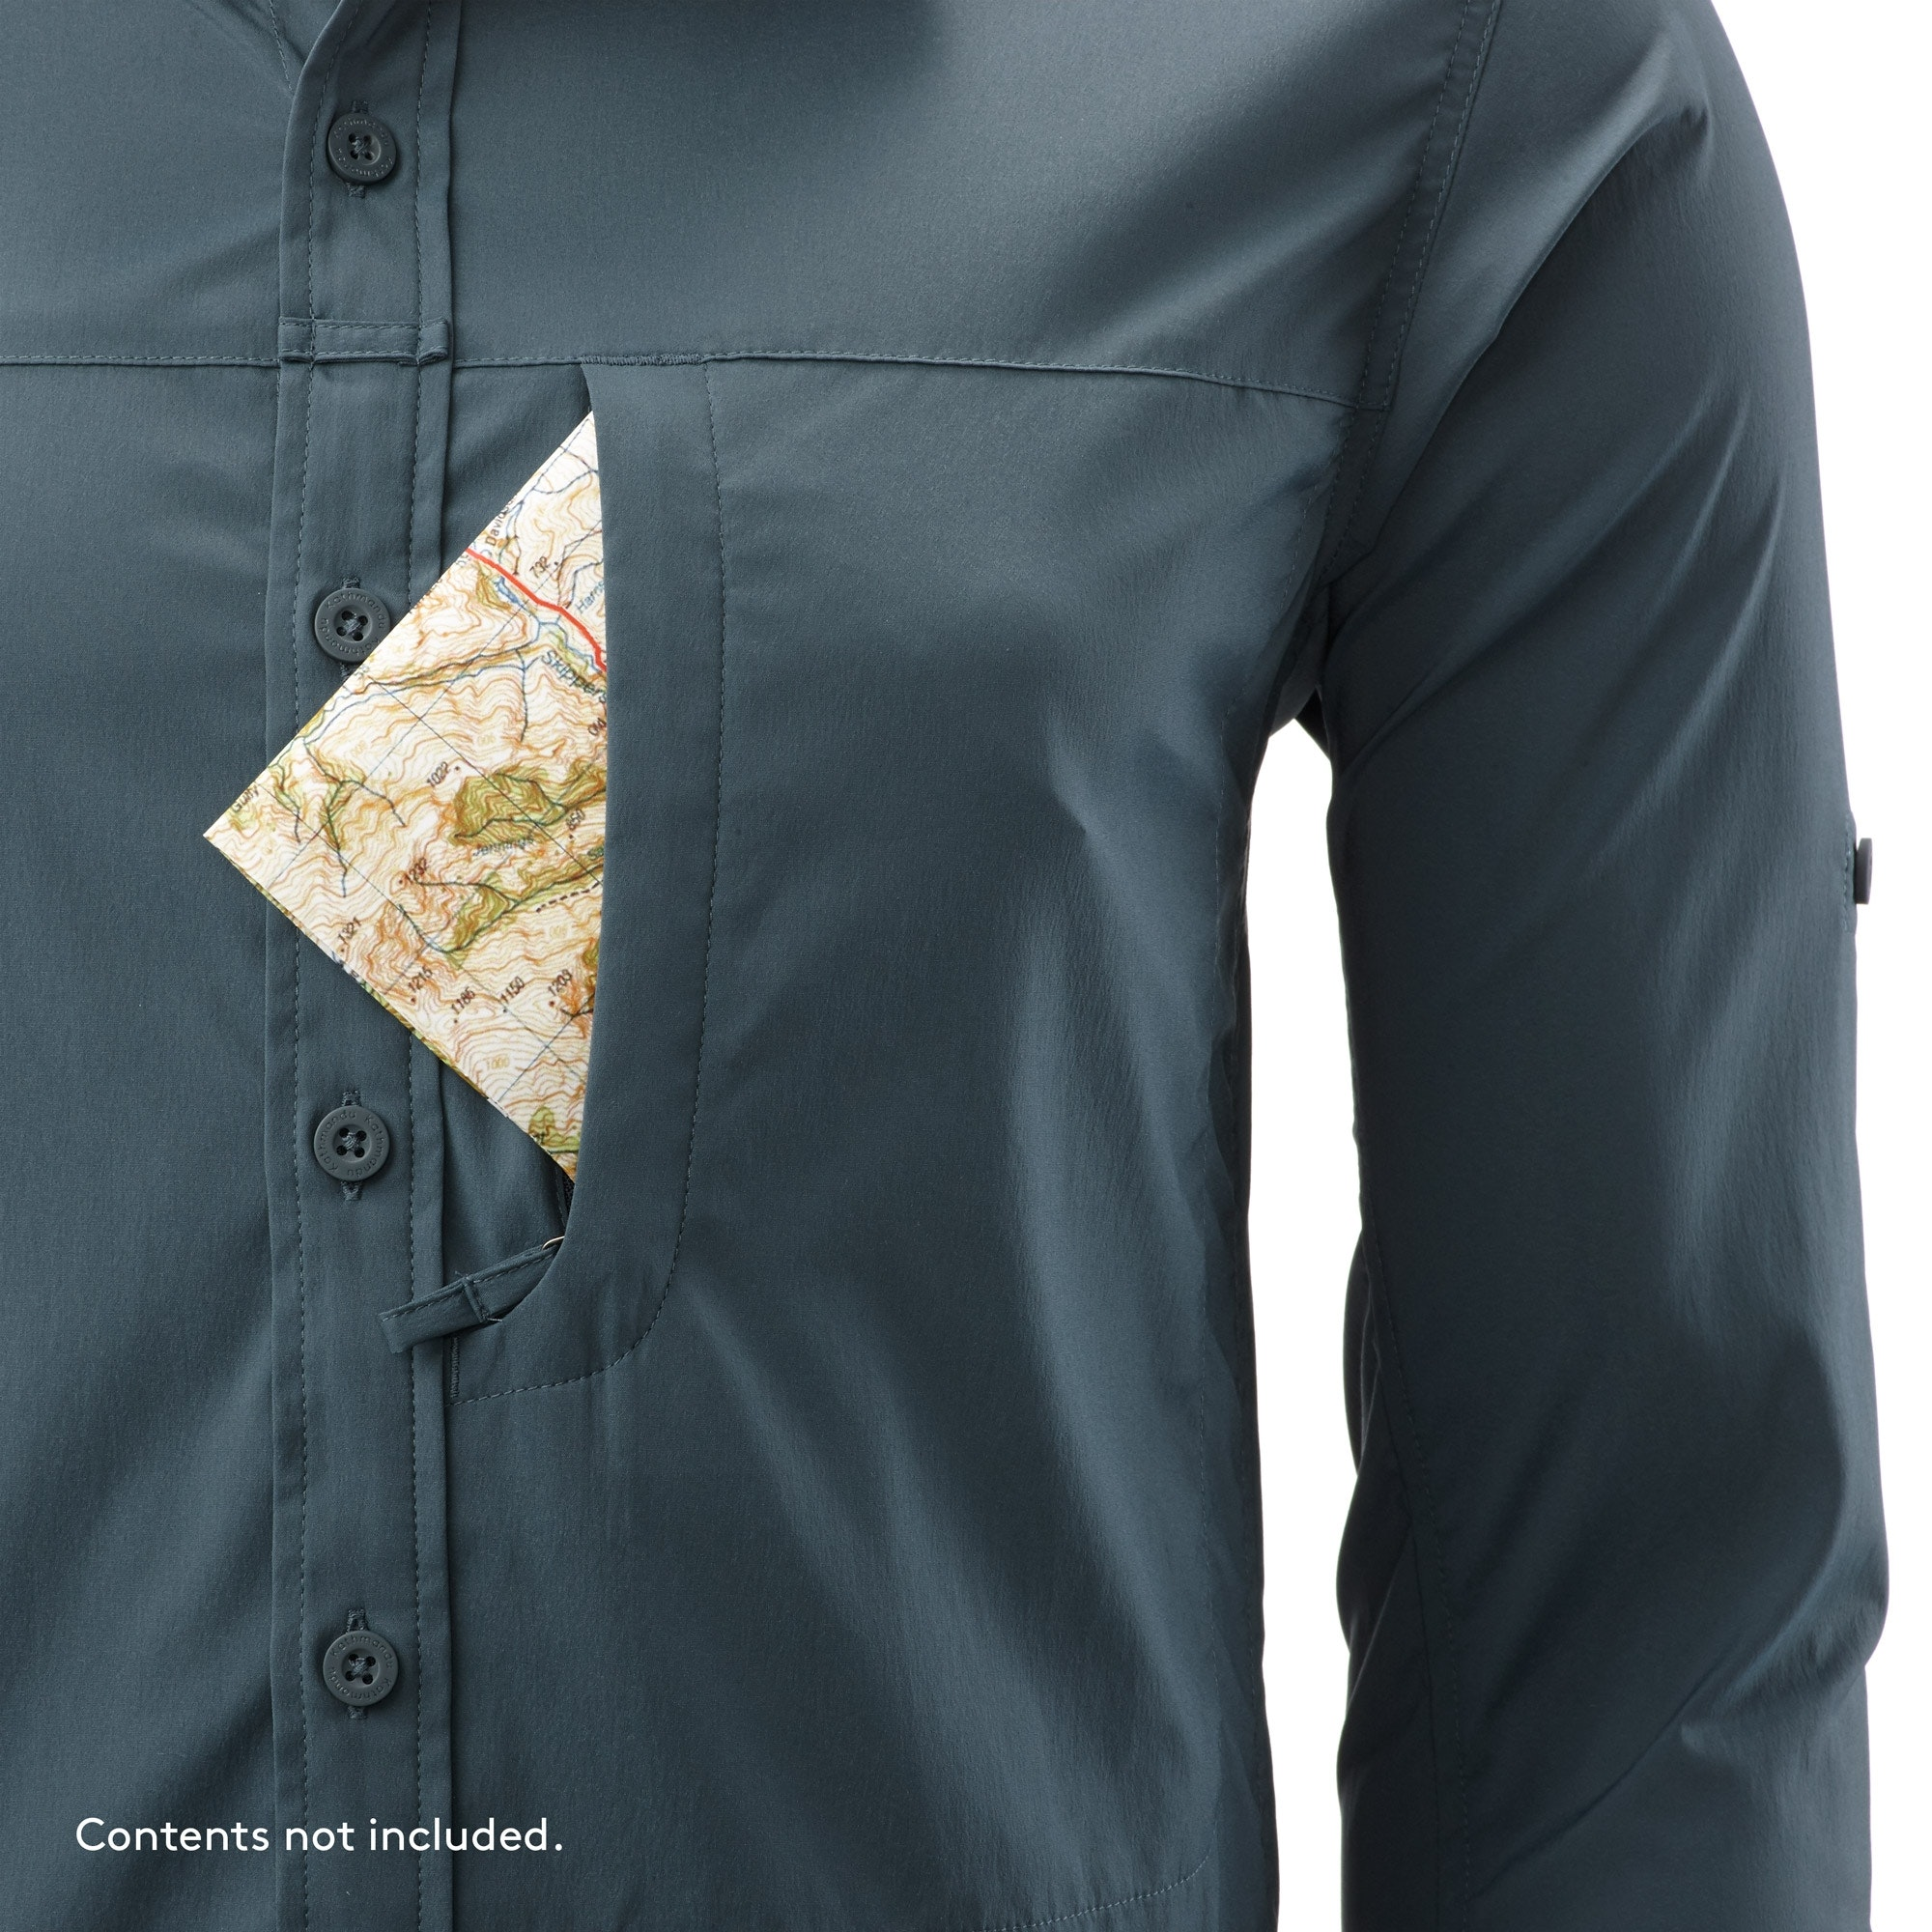 Kathmandu-Ken-Men-039-s-Long-Sleeved-Buttoned-Top-Slim-Fit-Durable-Hiking-Shirt-v2